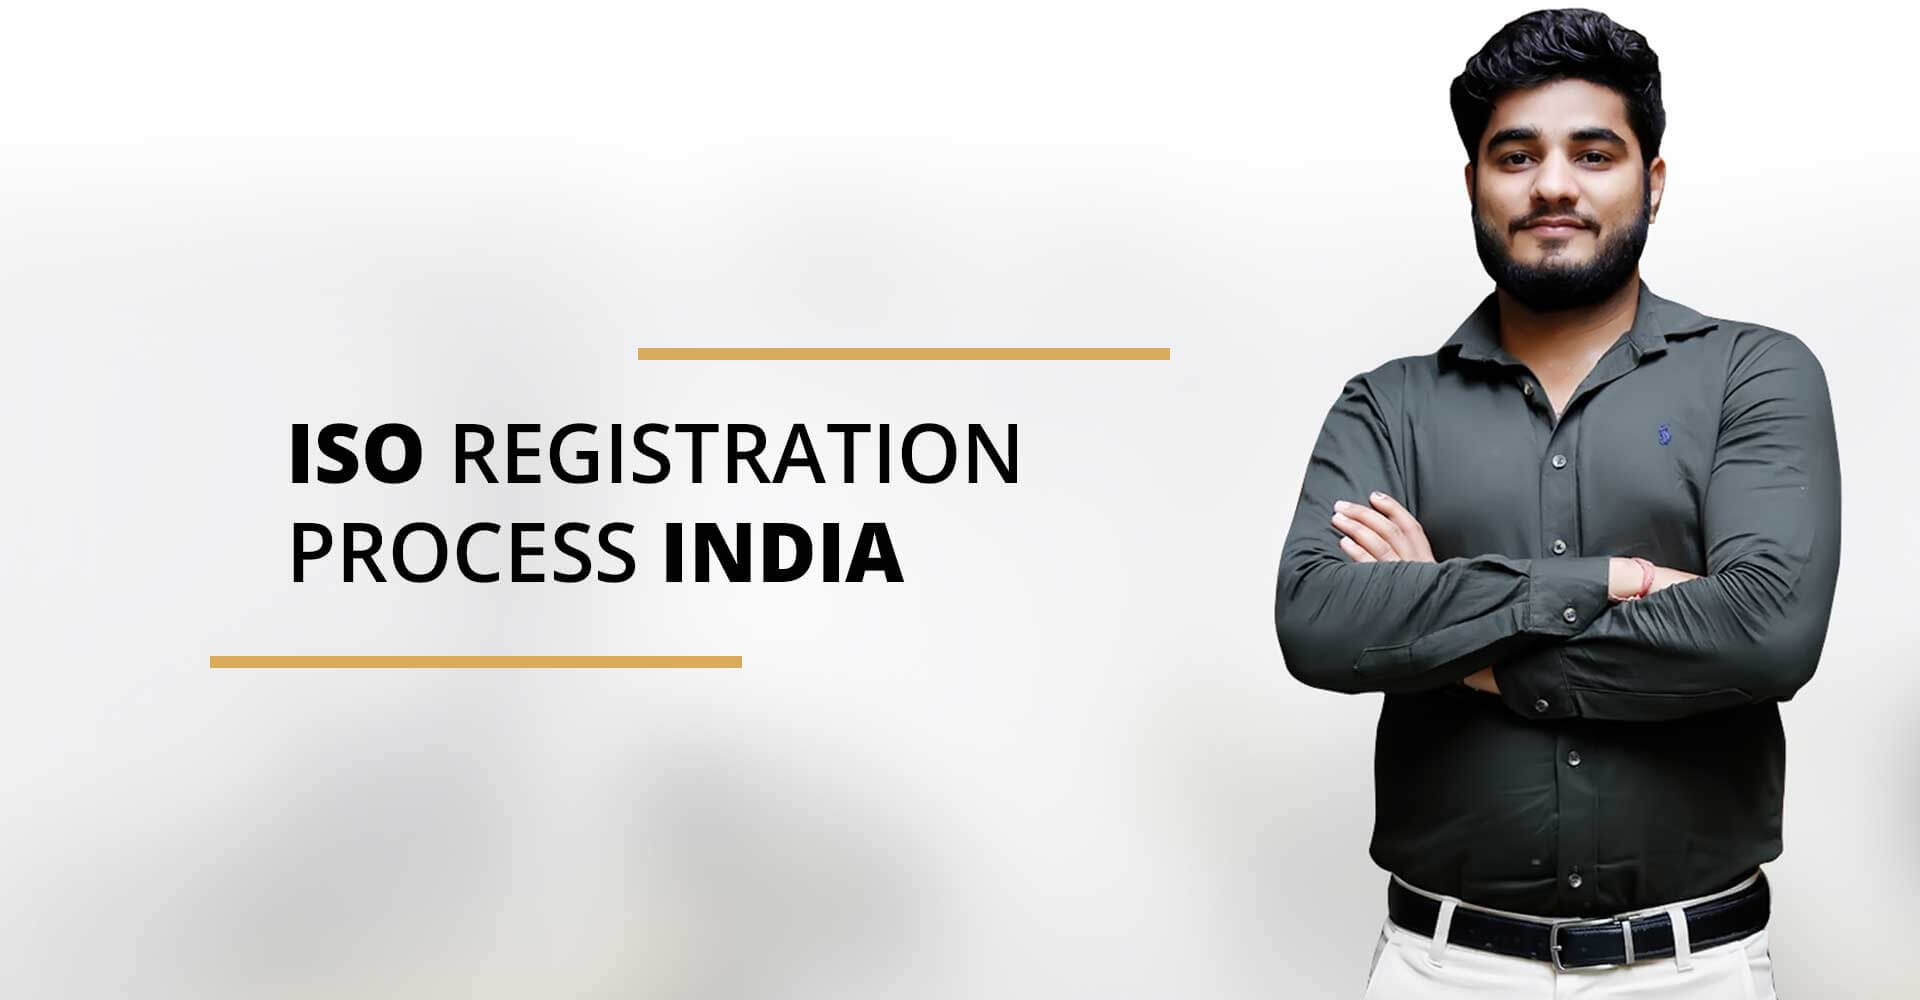 ISO REGISTRATION PROCESS INDIA